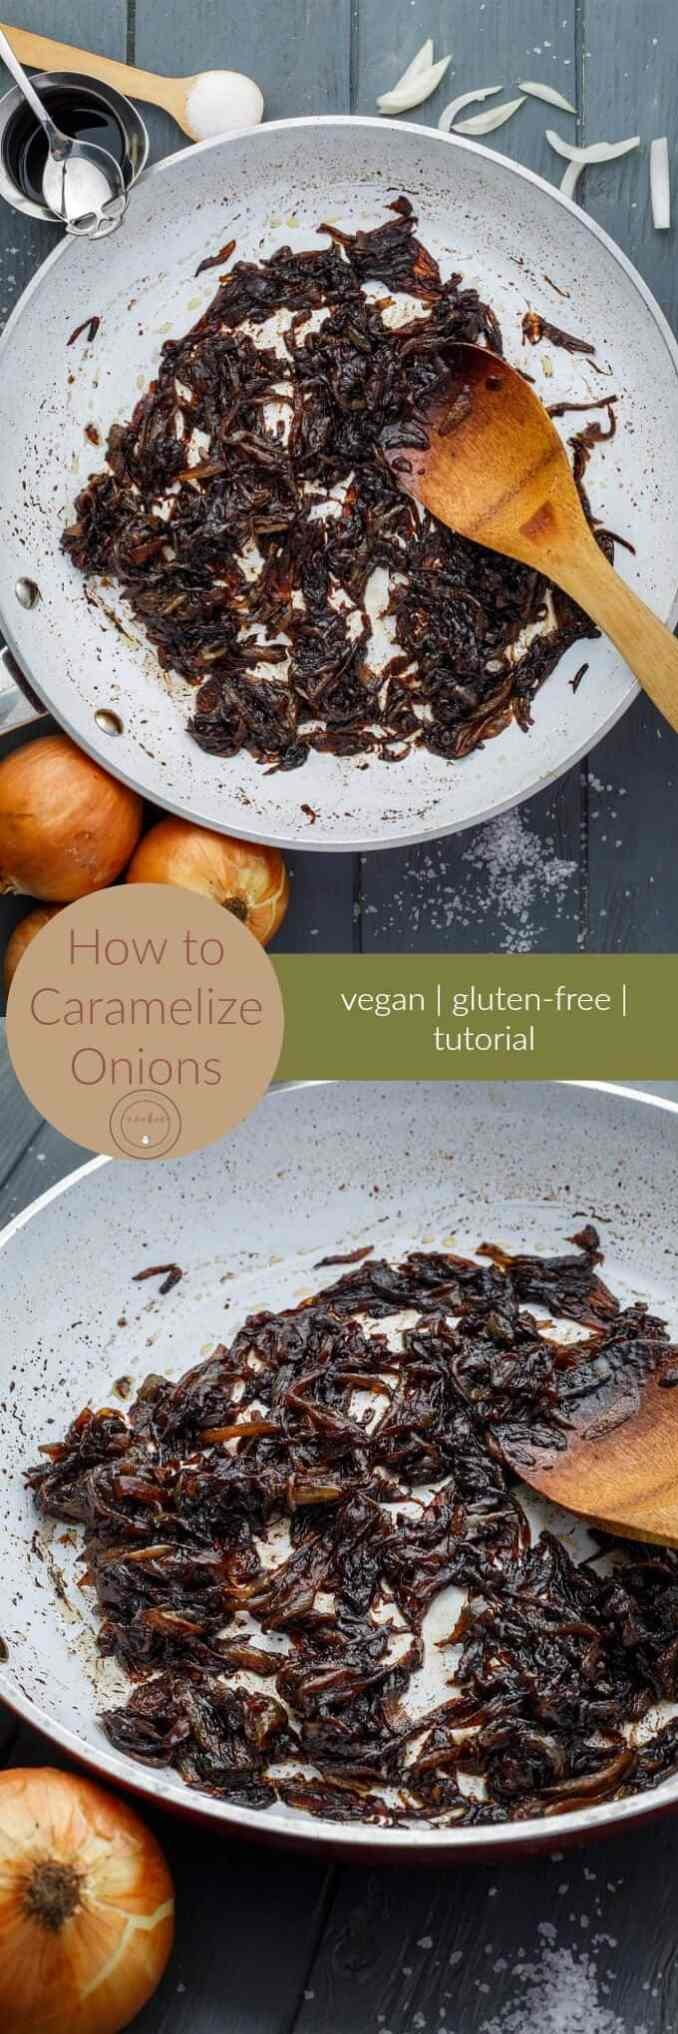 How to Caramelize Onions (a Tutorial!) - The Cookie Writer